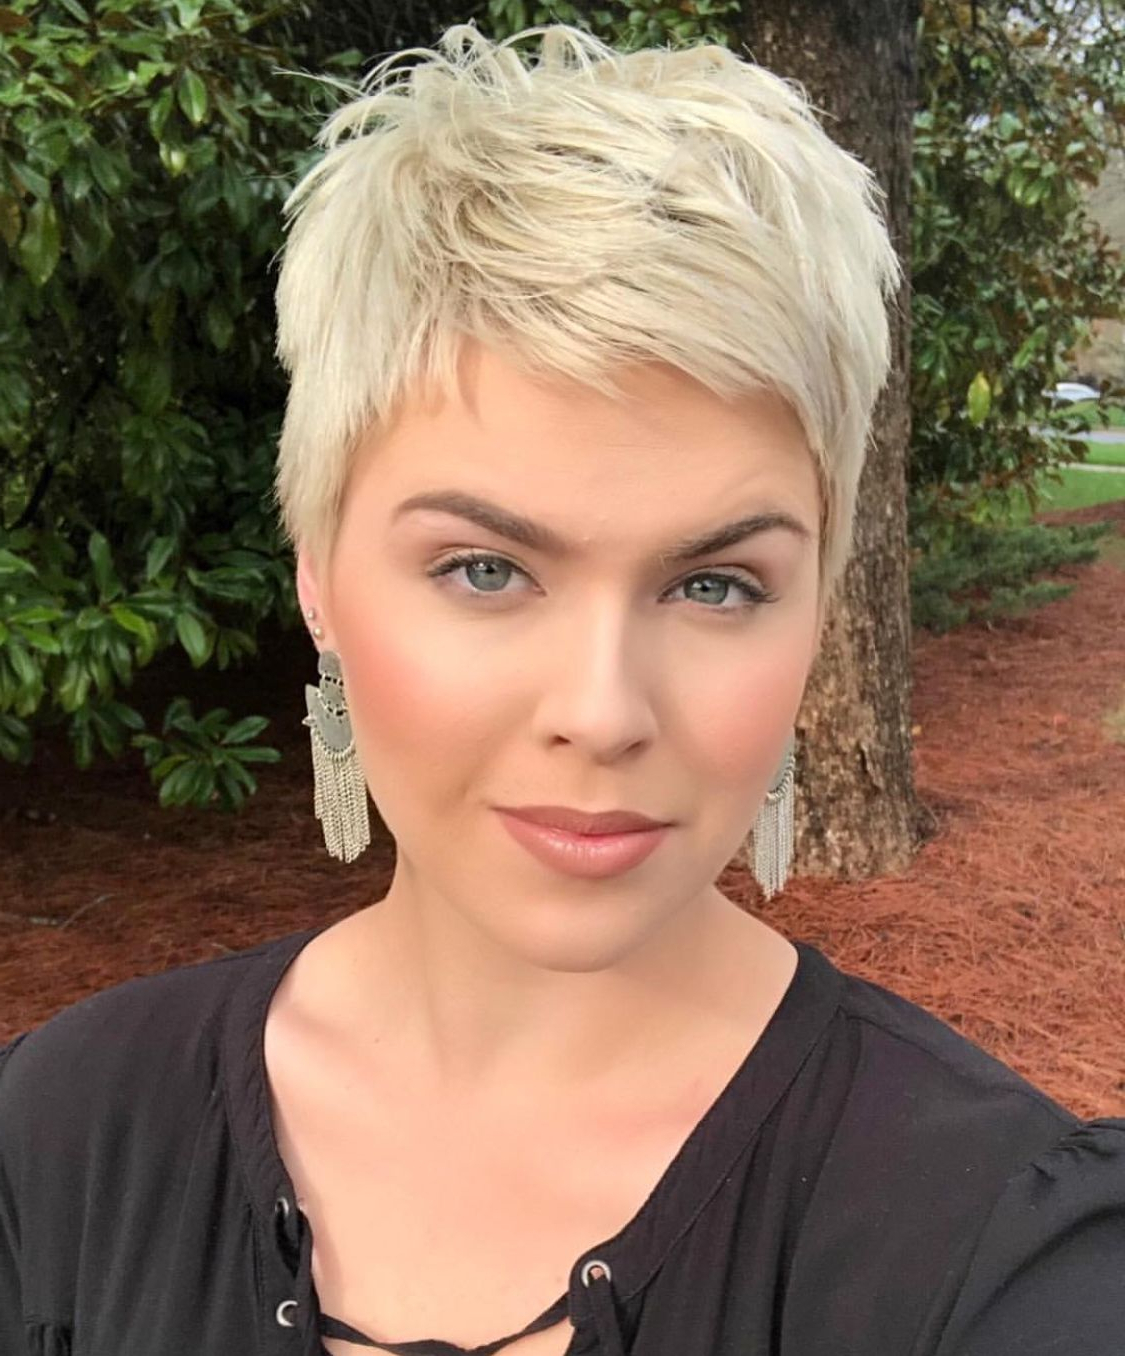 Widely Used Sassy Short Pixie Haircuts With Bangs With Pin On Hair Styles (View 2 of 20)